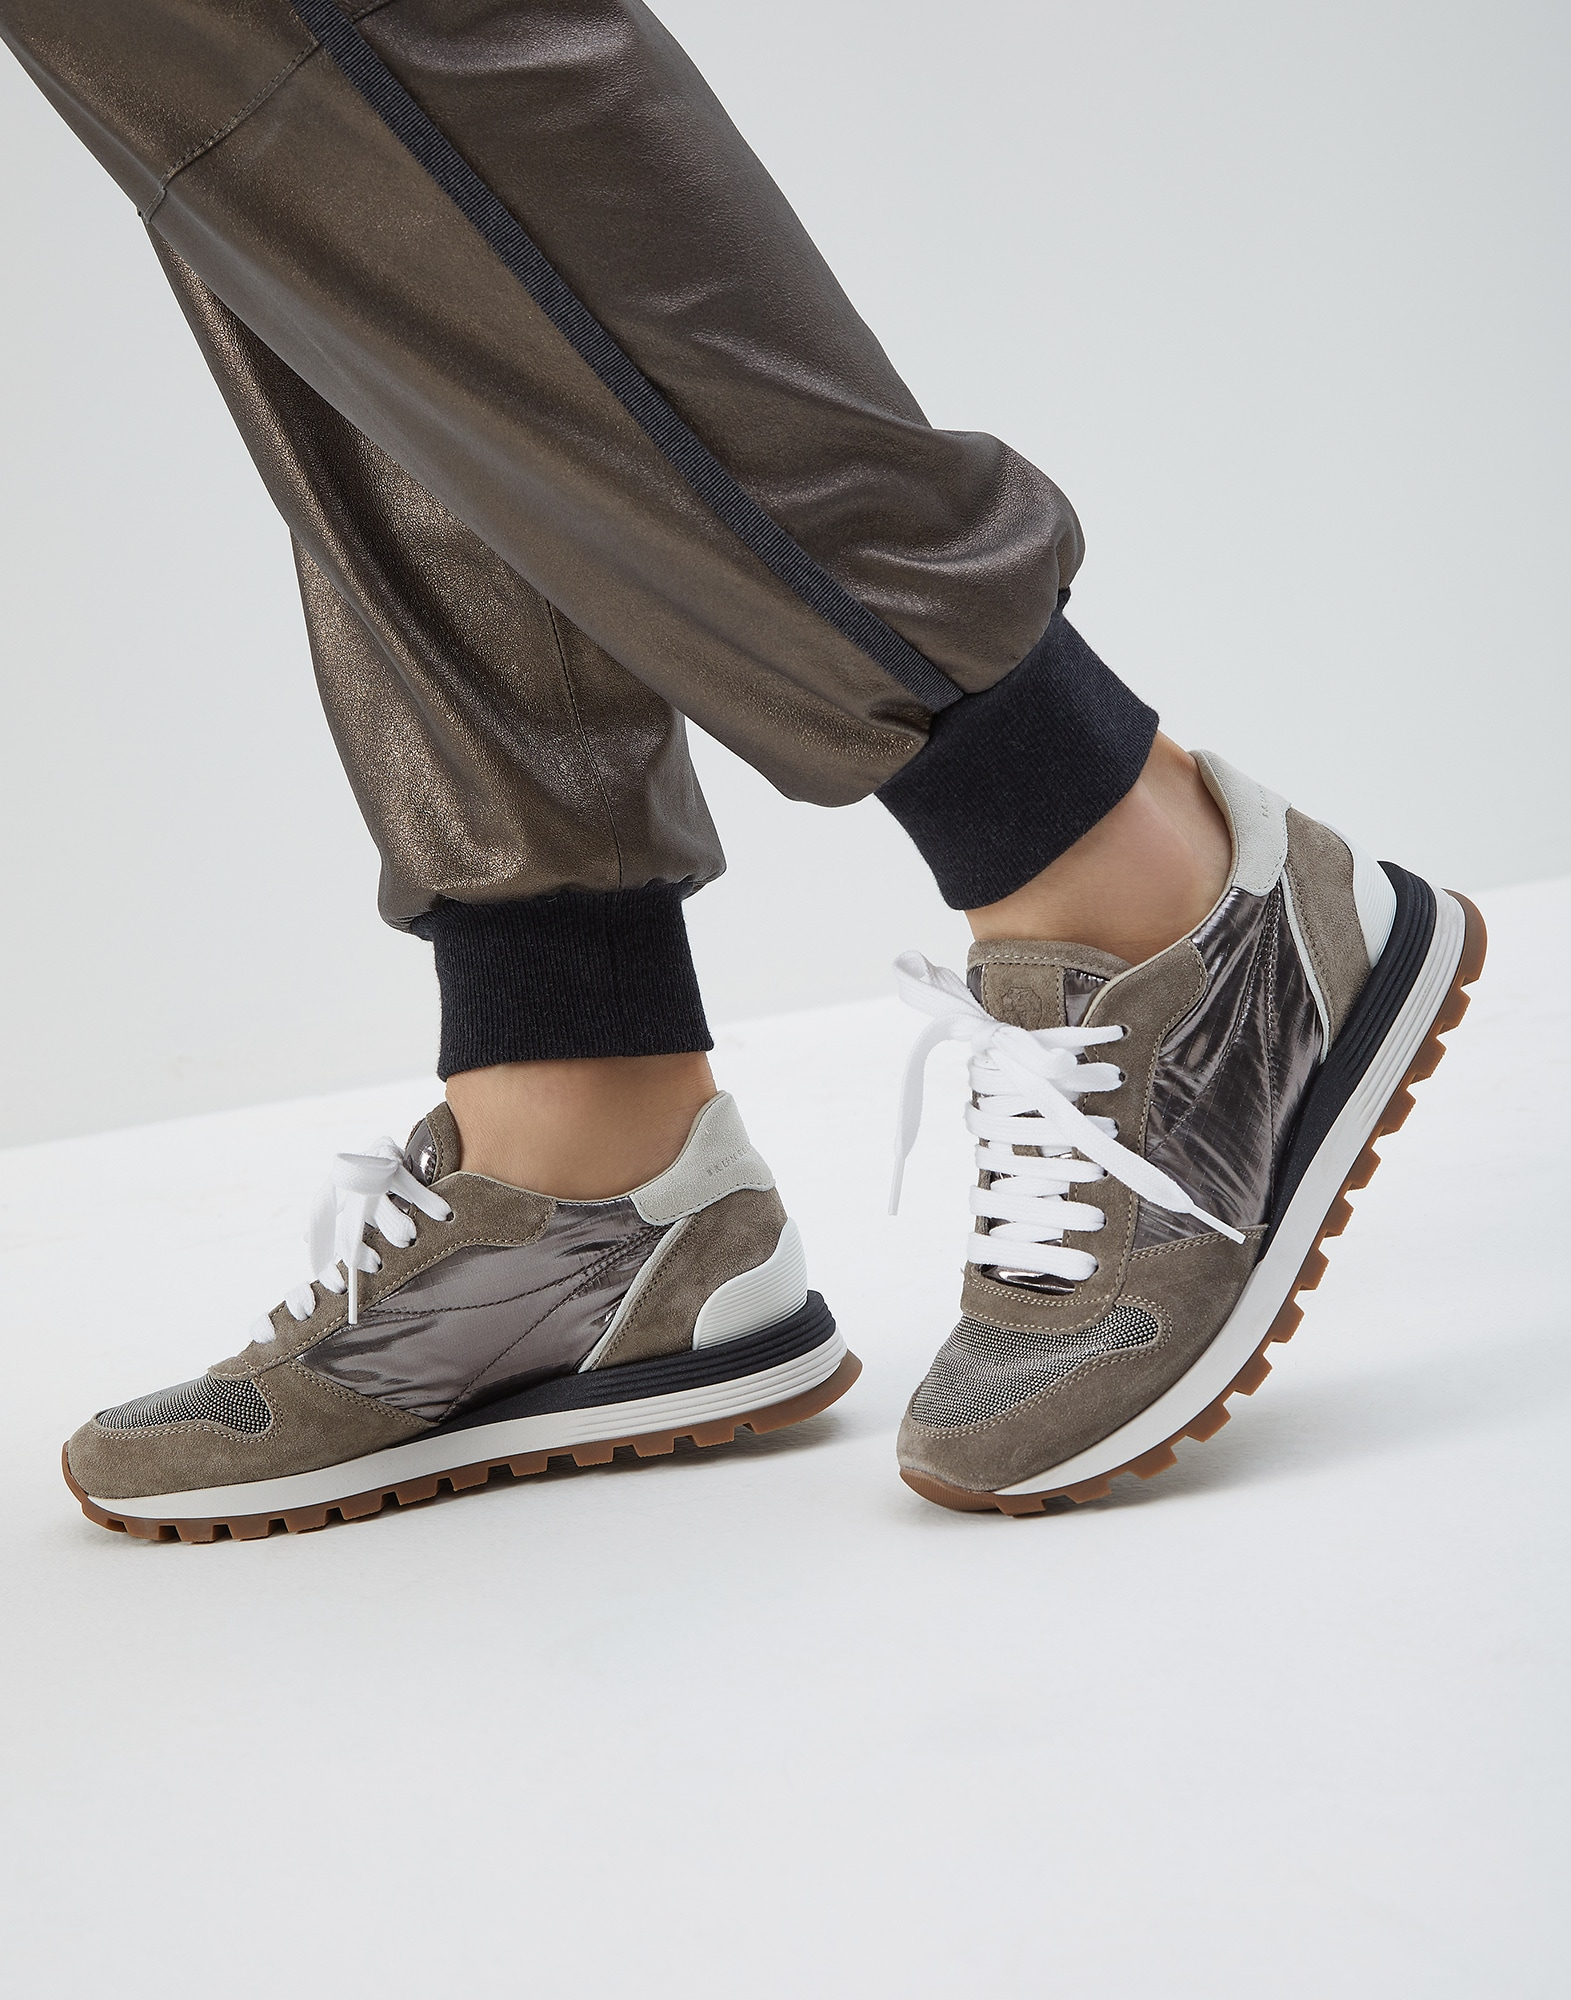 Sneakers Mud Woman 4 - Brunello Cucinelli